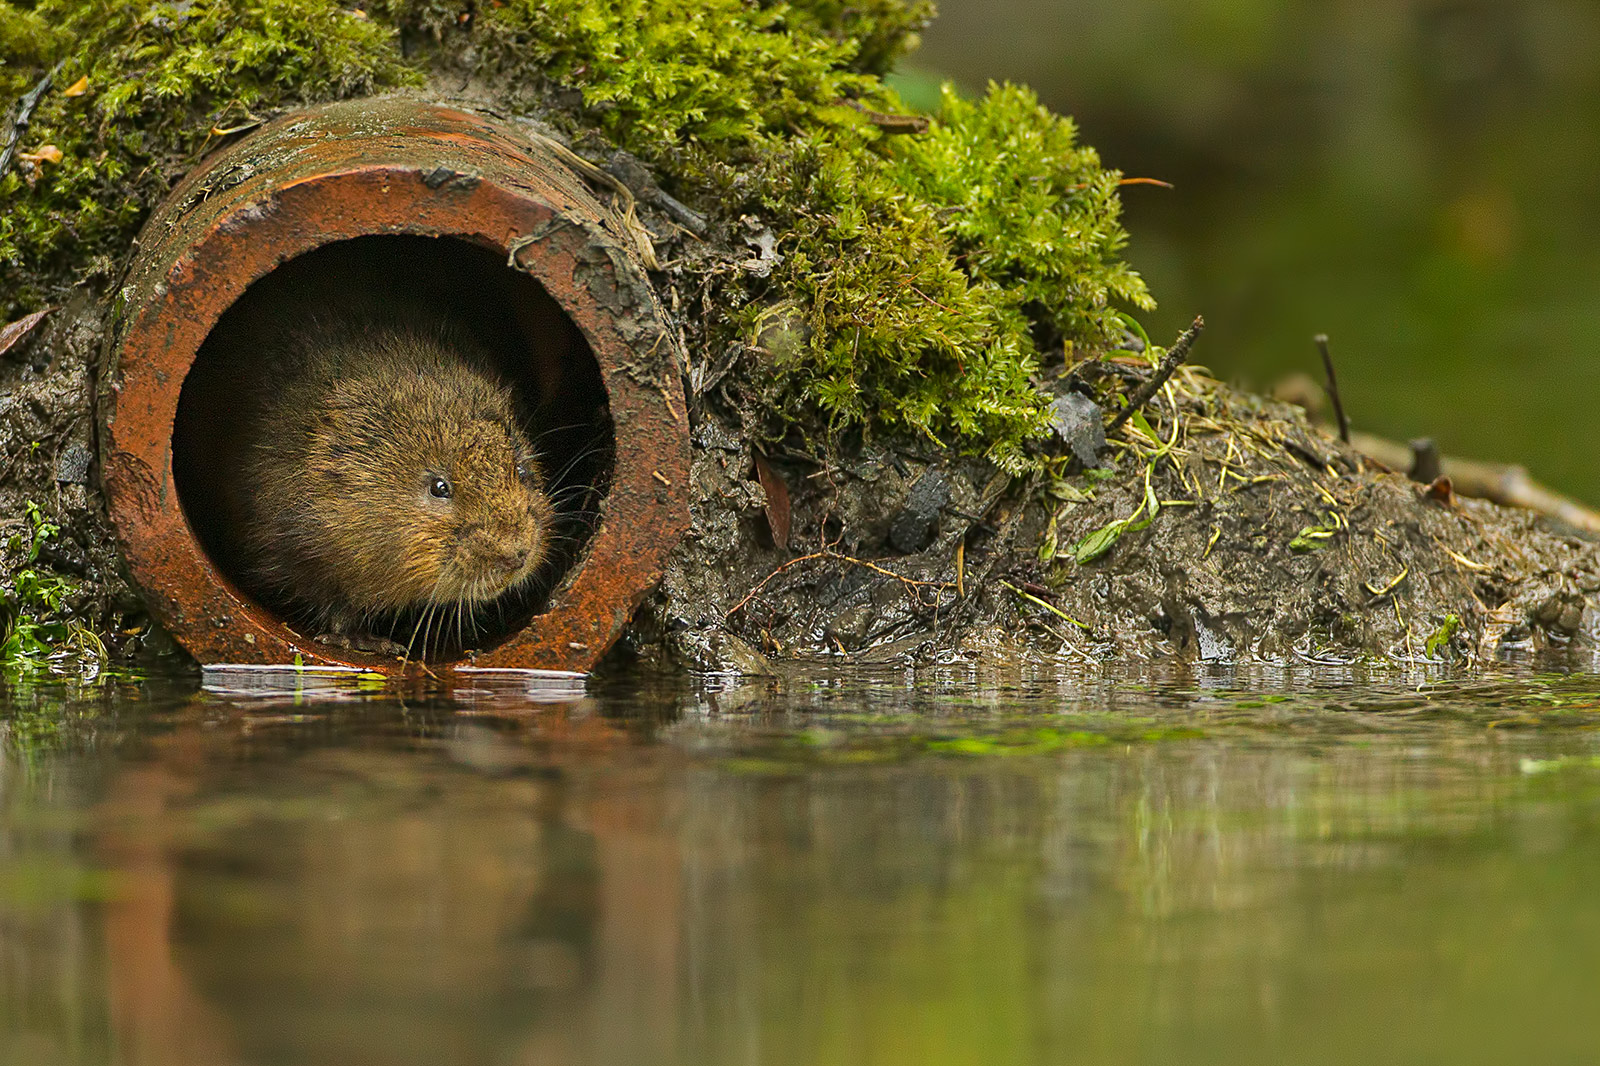 Water vole in entrance